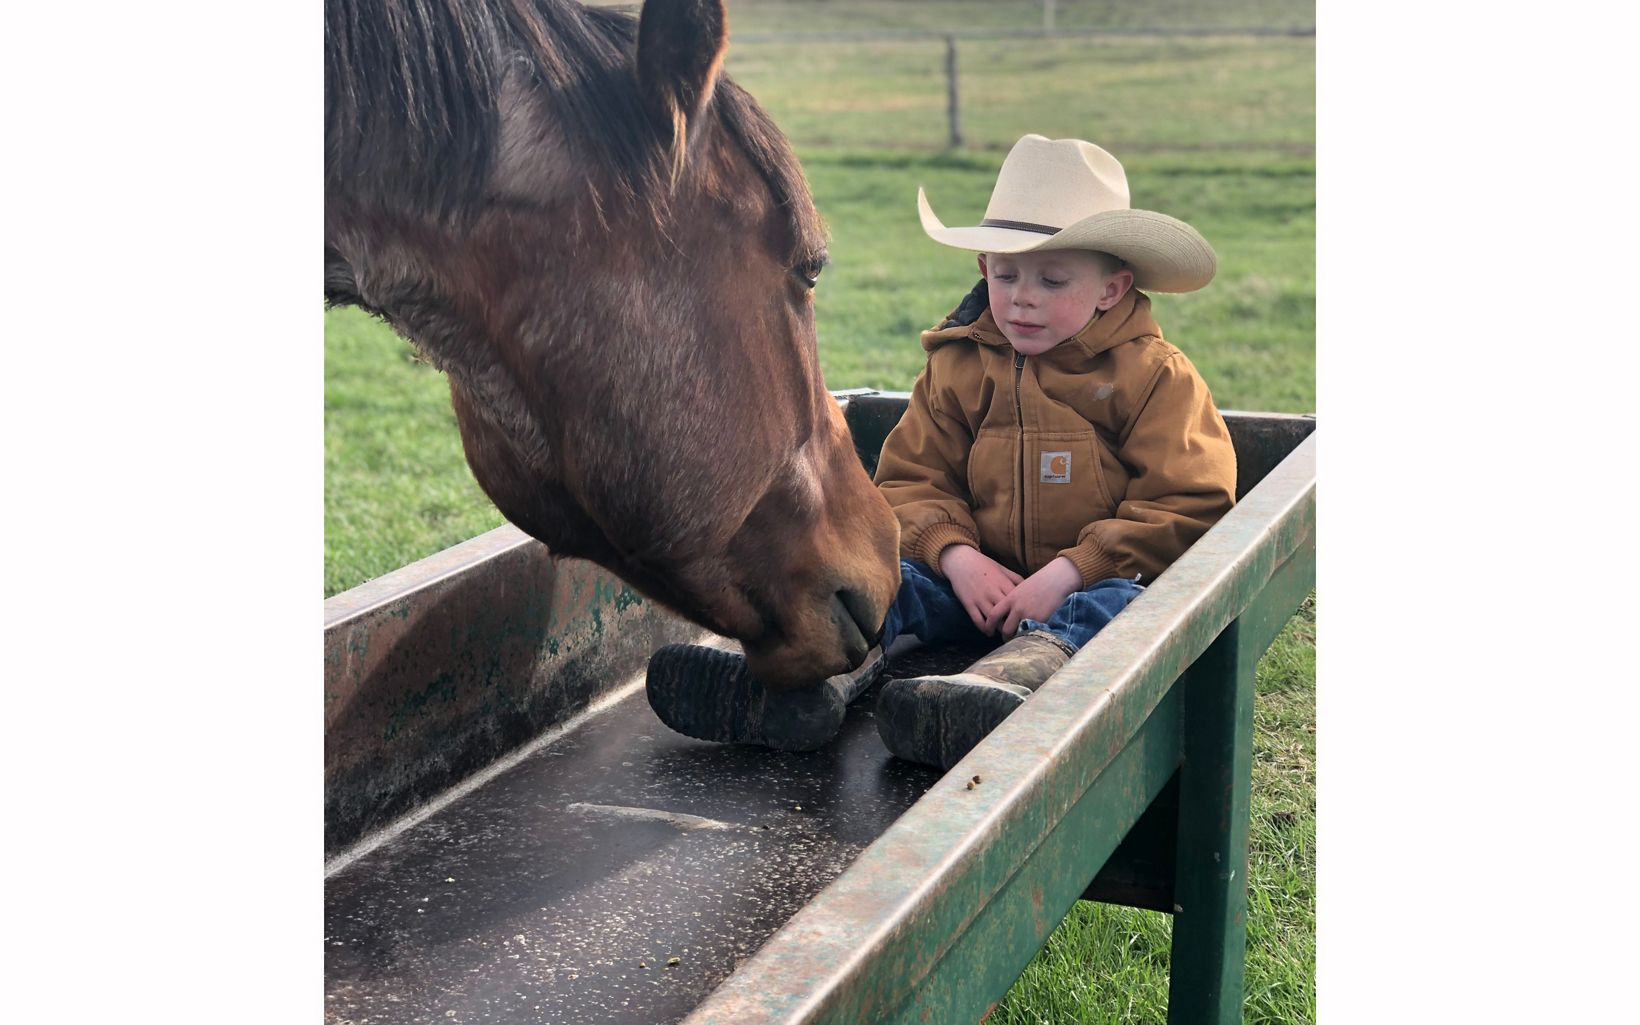 Boy in cowboy hat sits in trough next to horse.